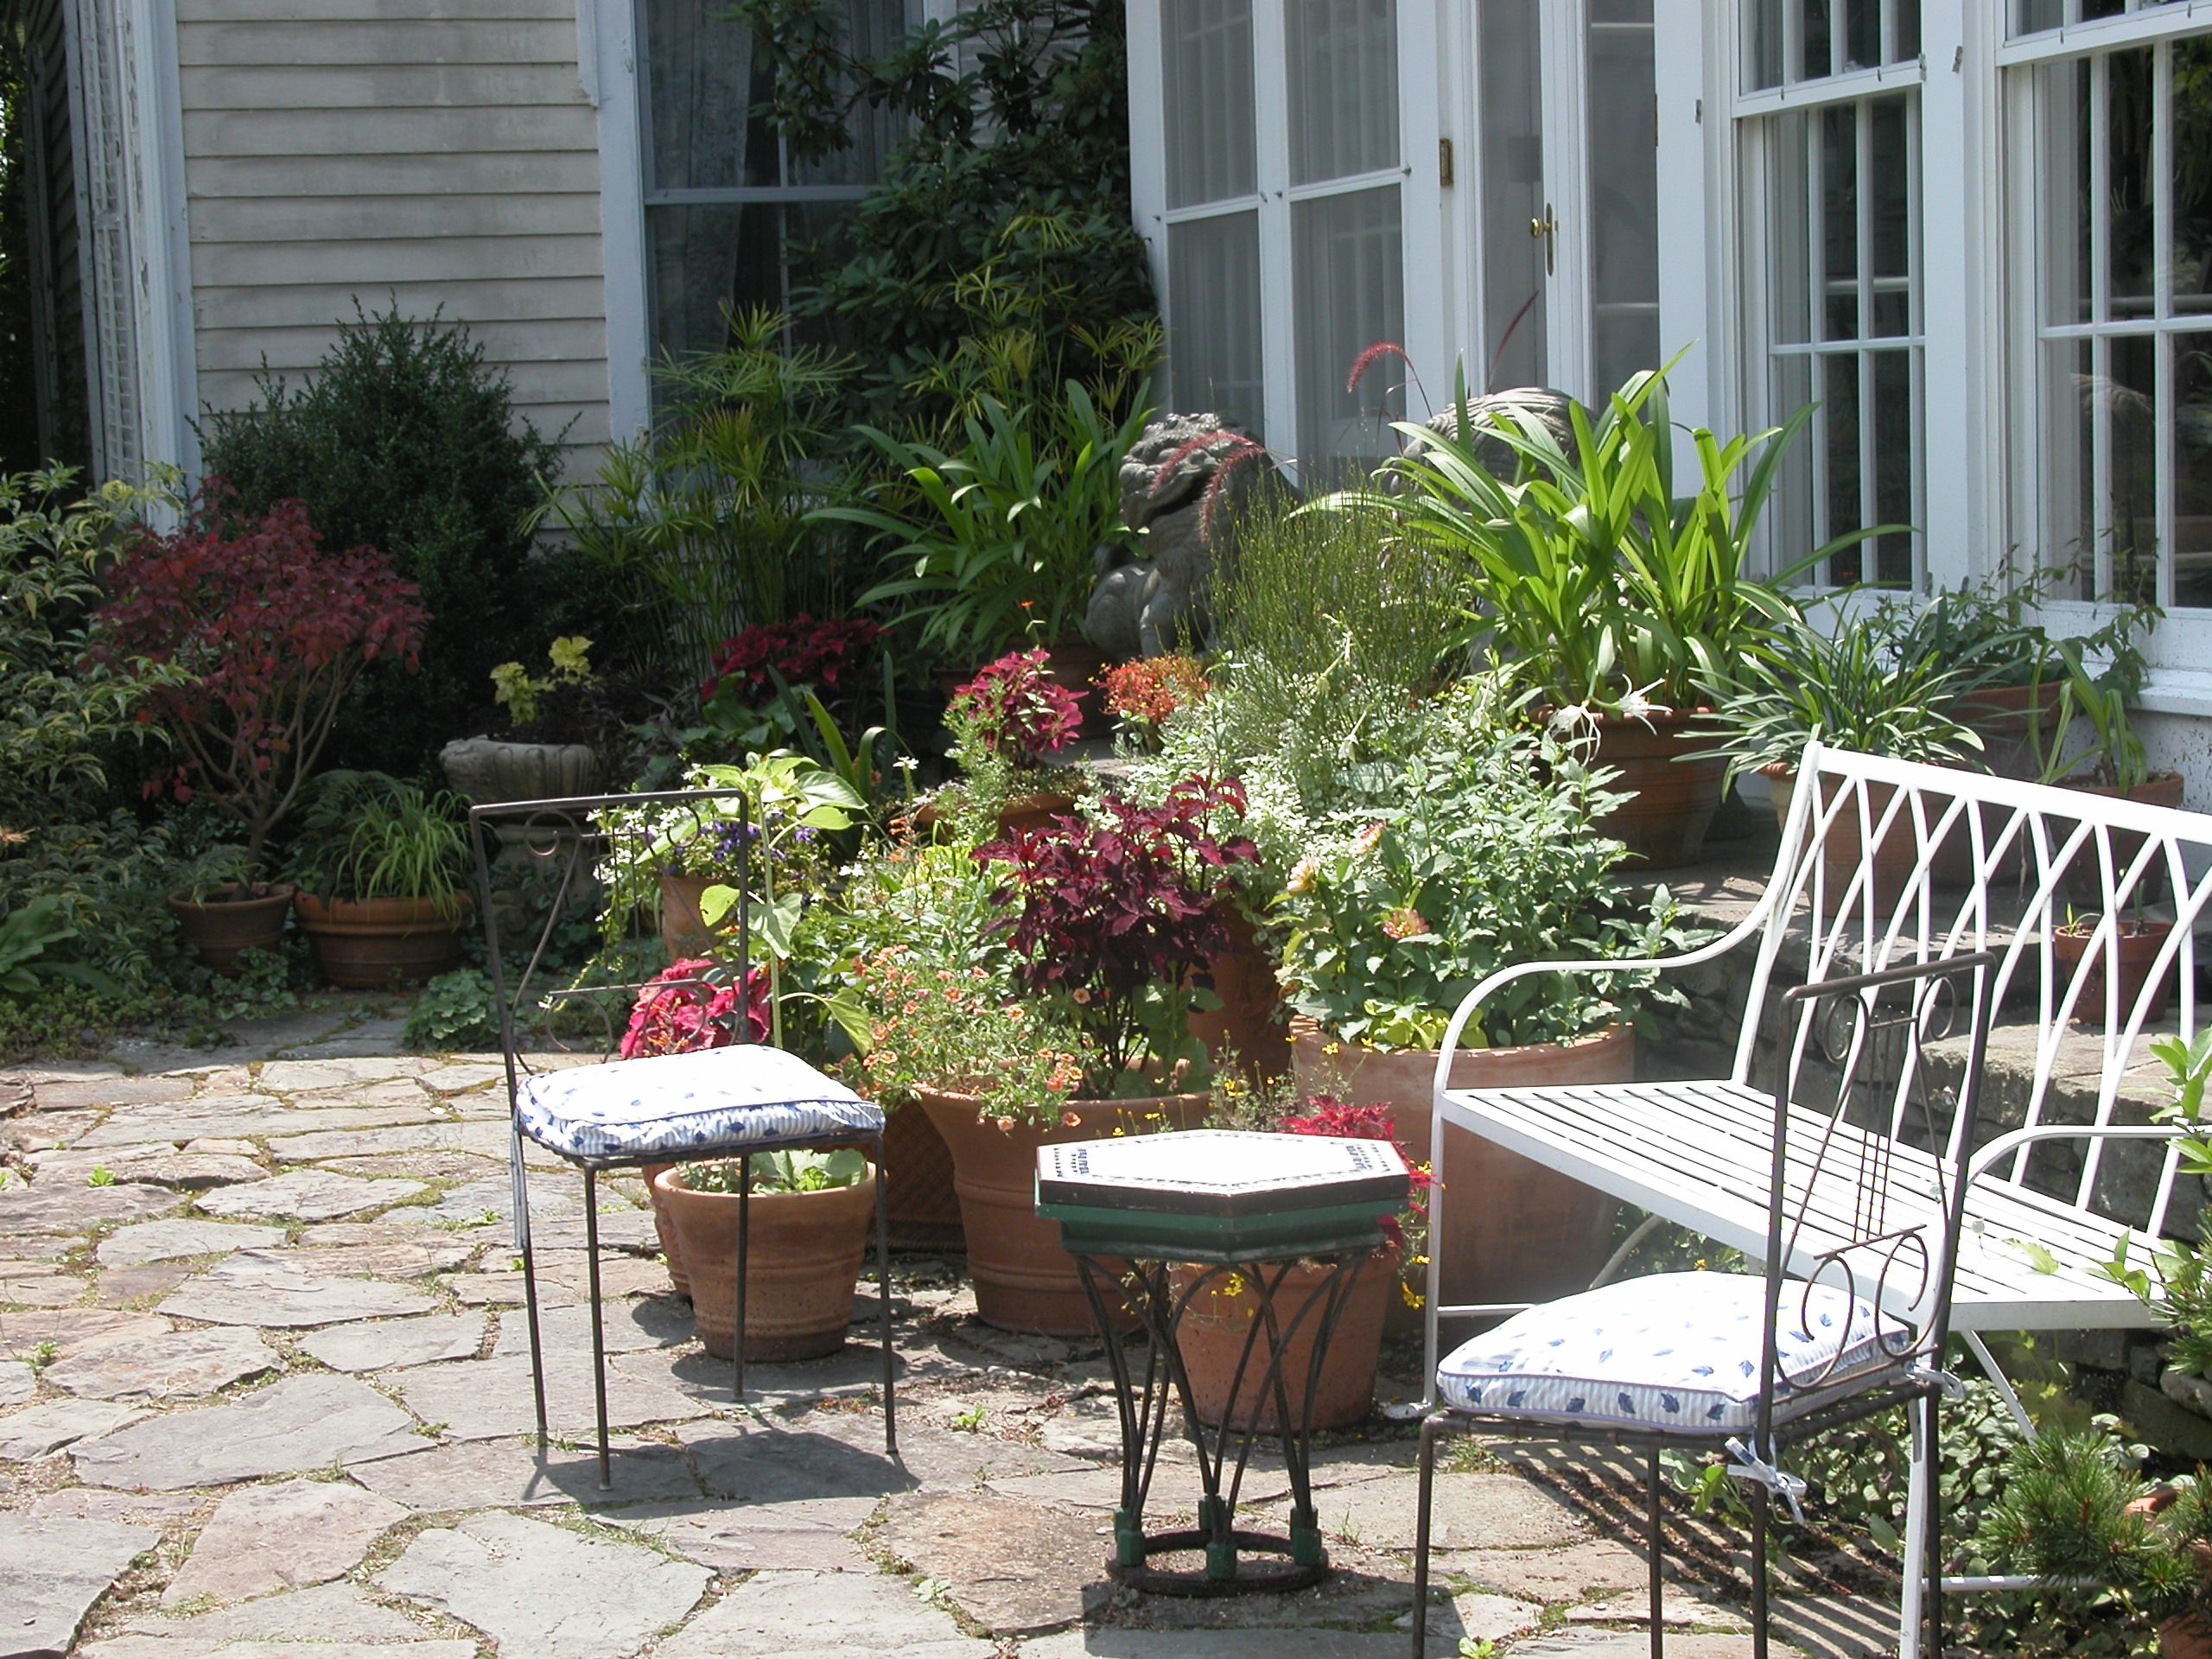 Creating Seating Areas in the Garden